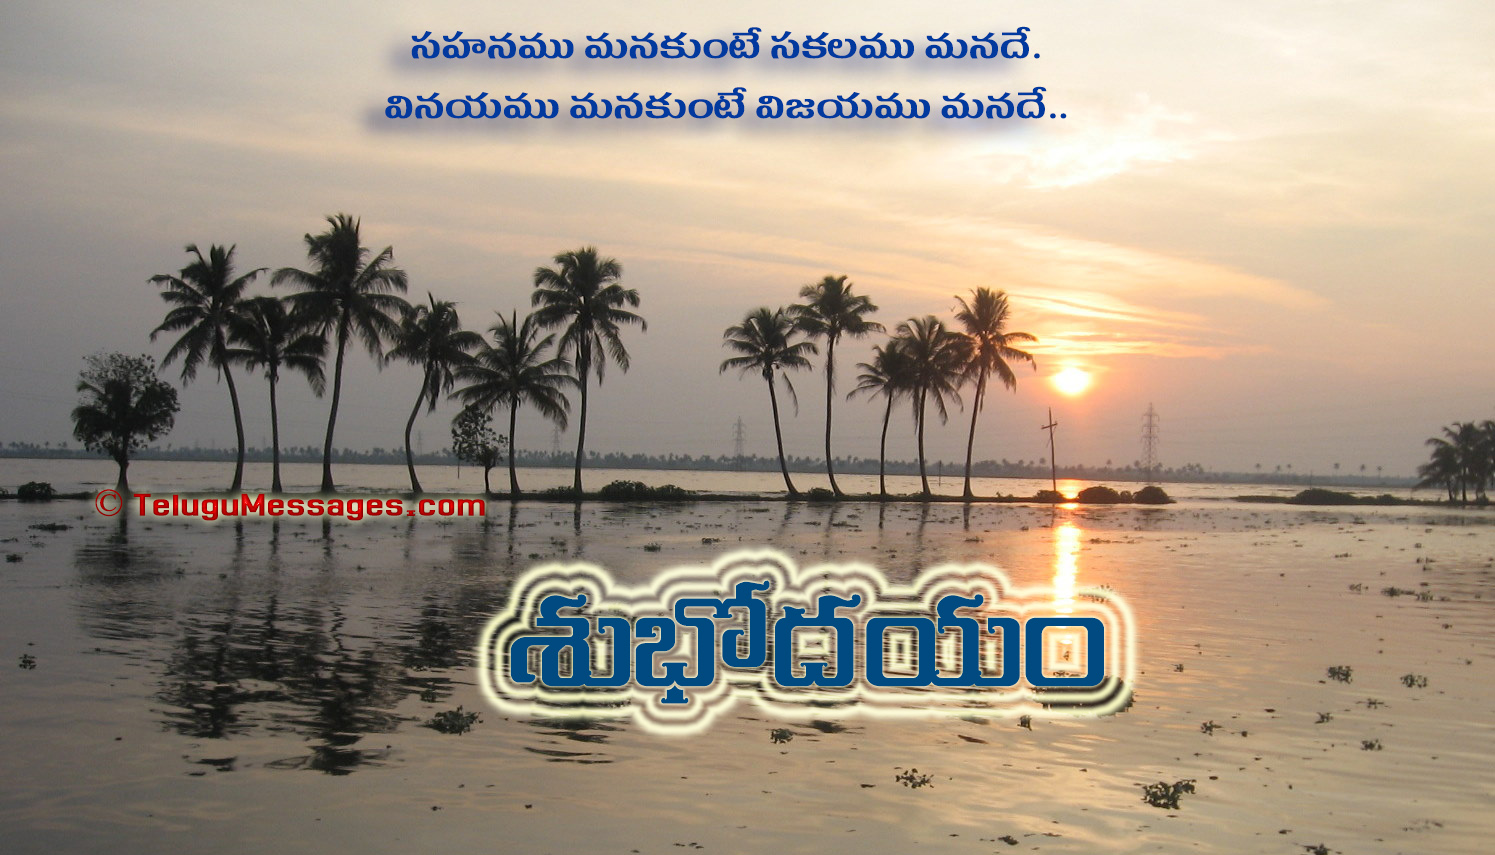 Telugu Good Morning on Patience - Coconut Trees